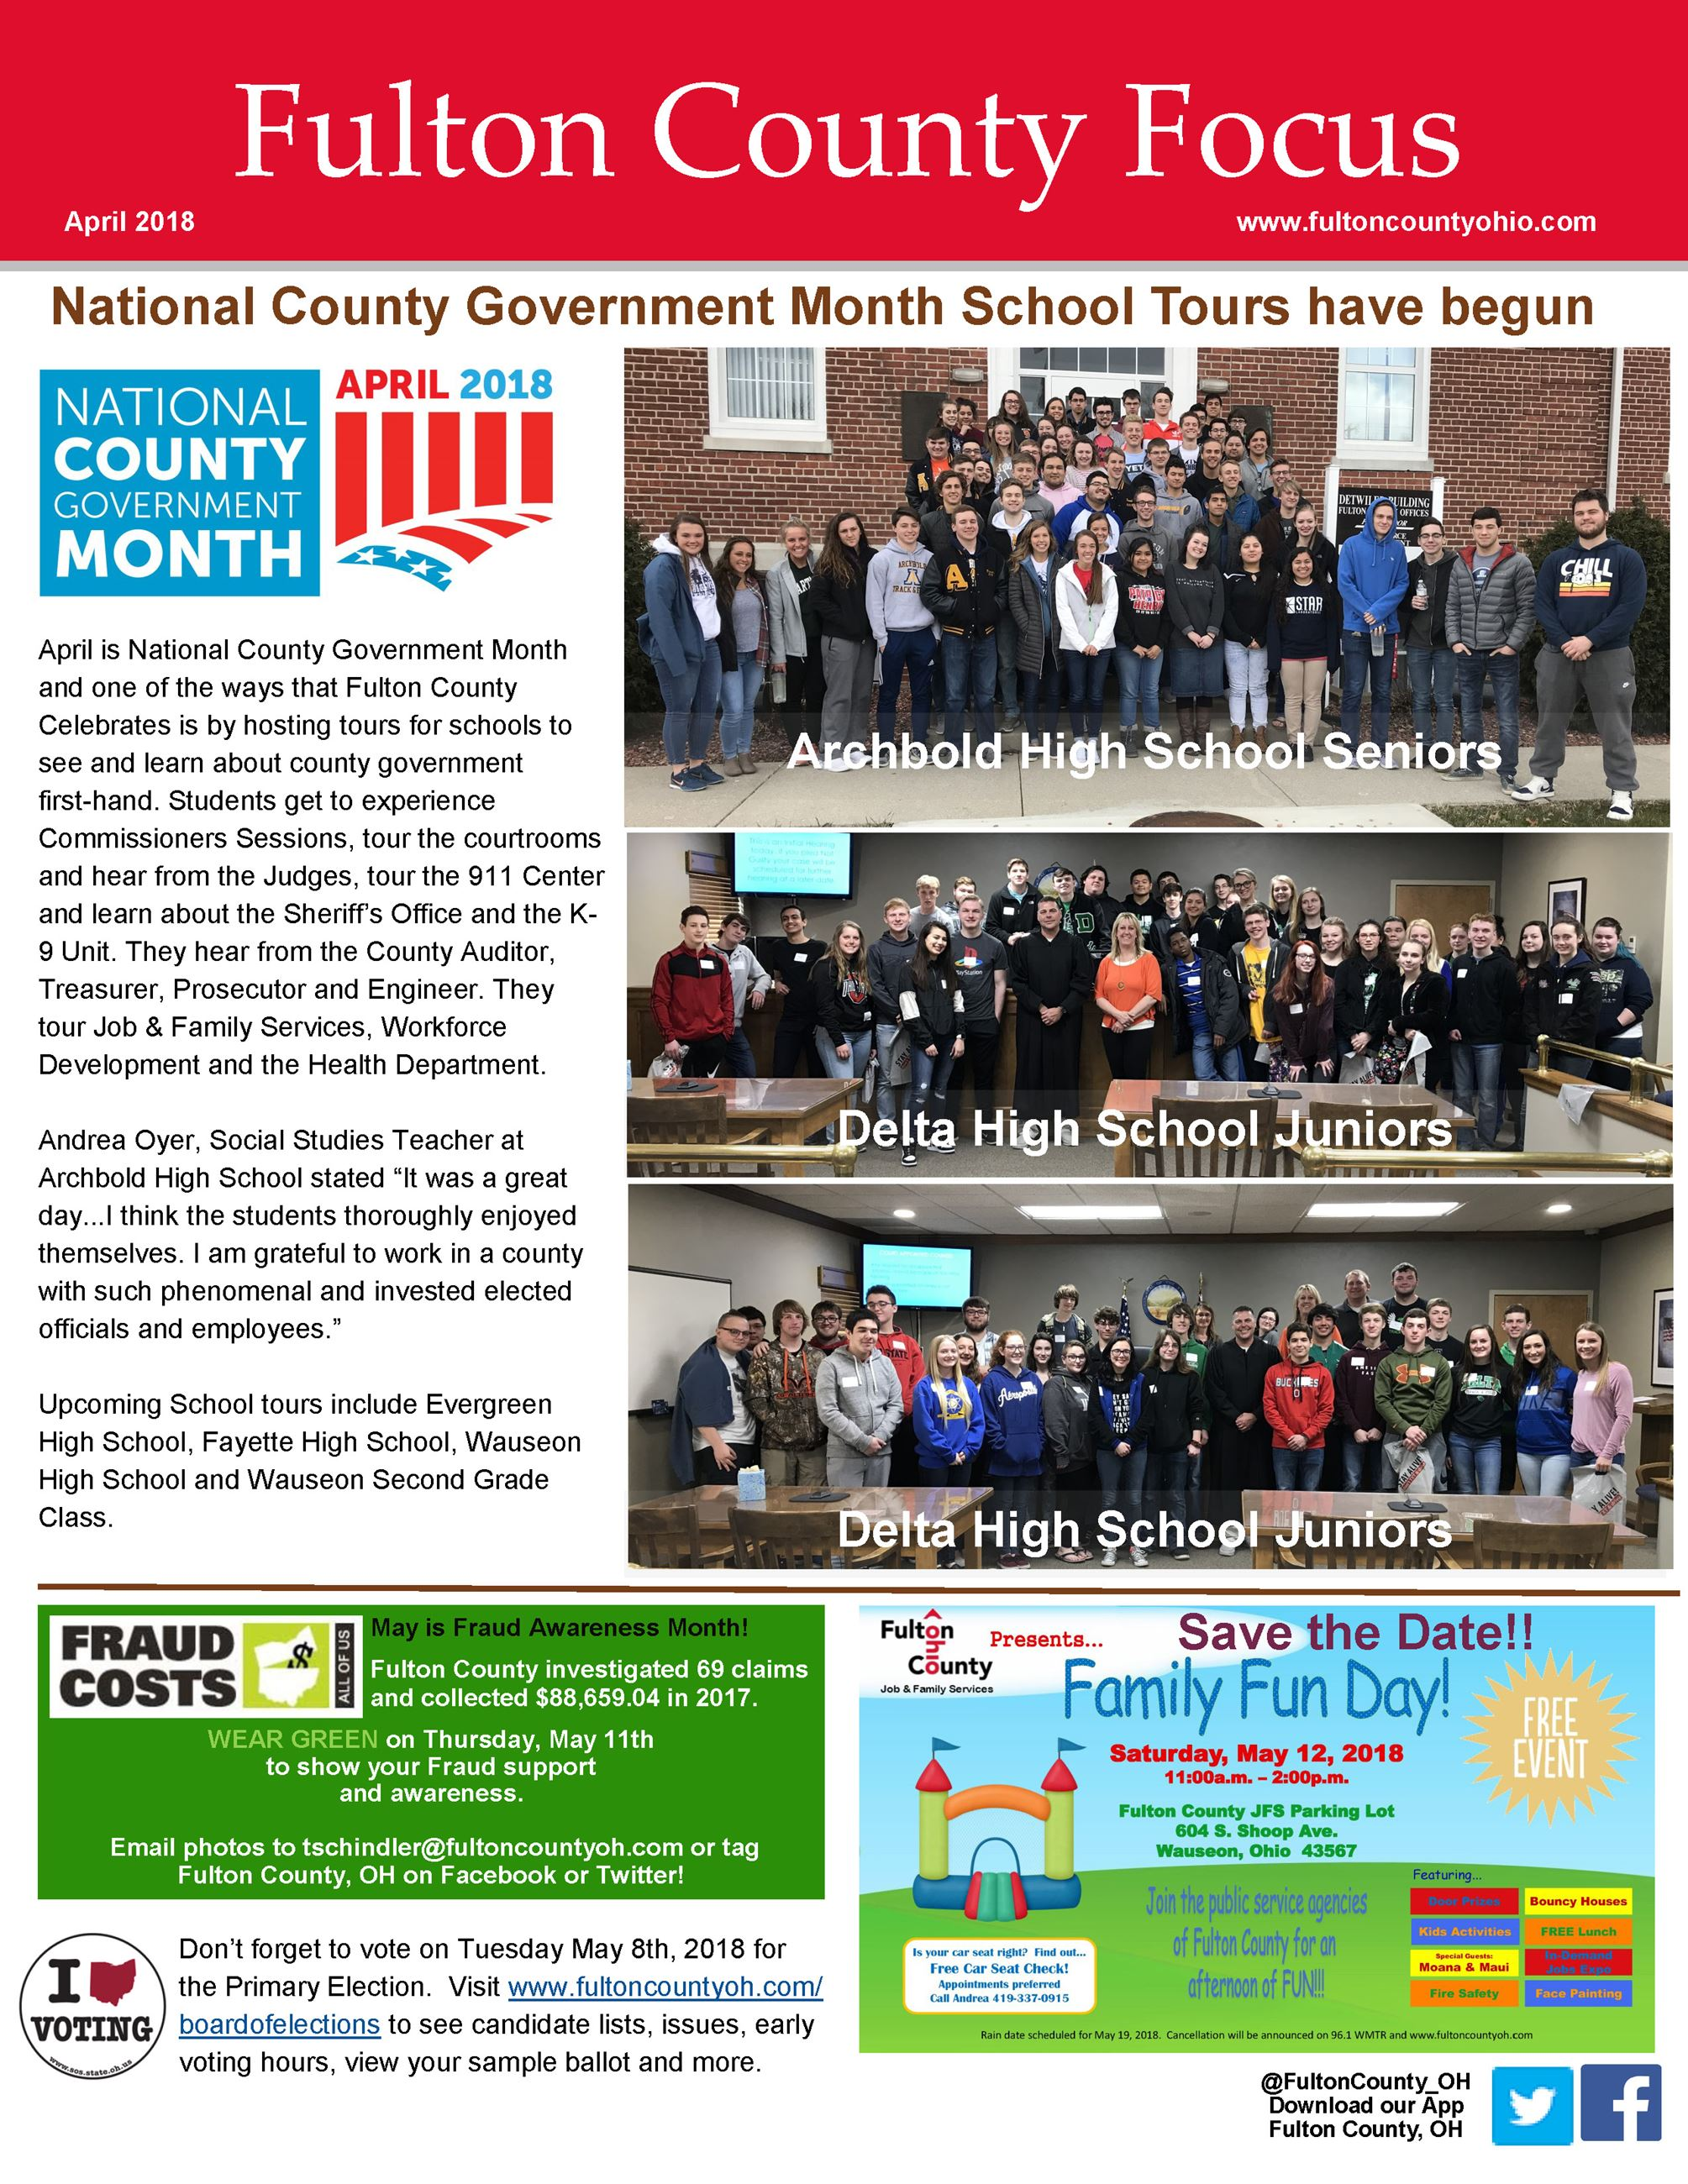 Fulton County Focus April 2018